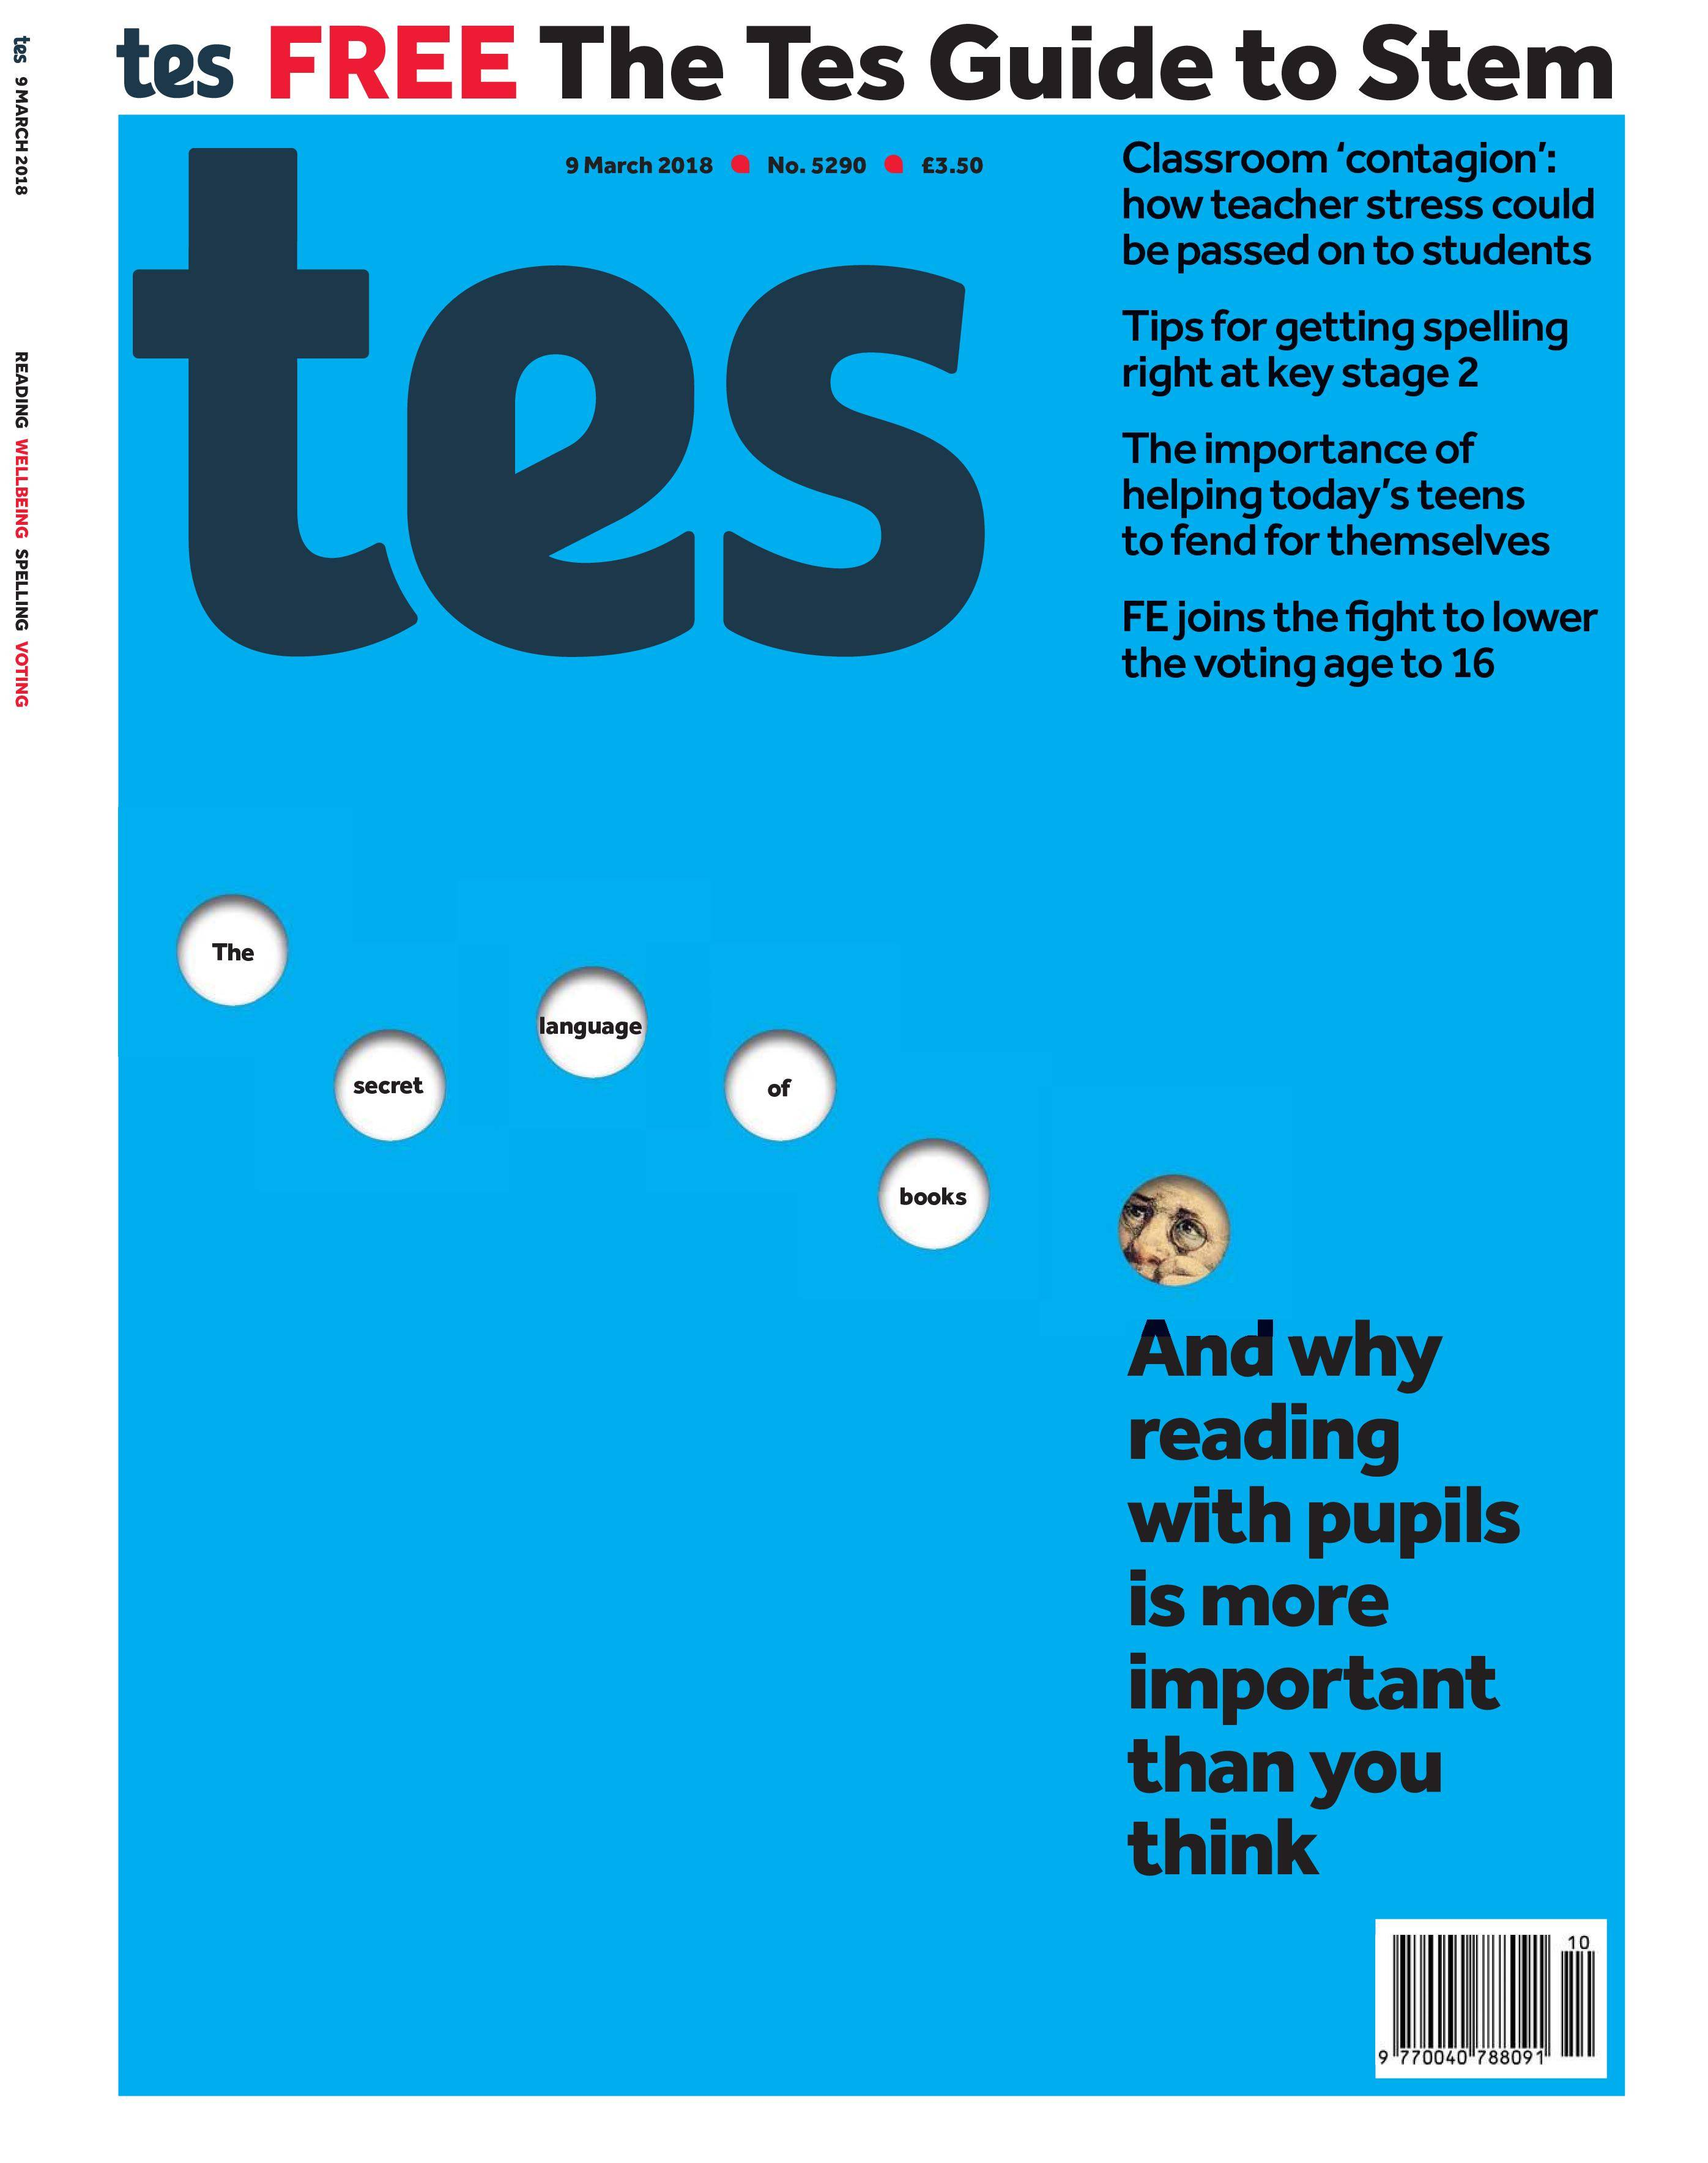 Times Educational Supplement - March 09, 2018